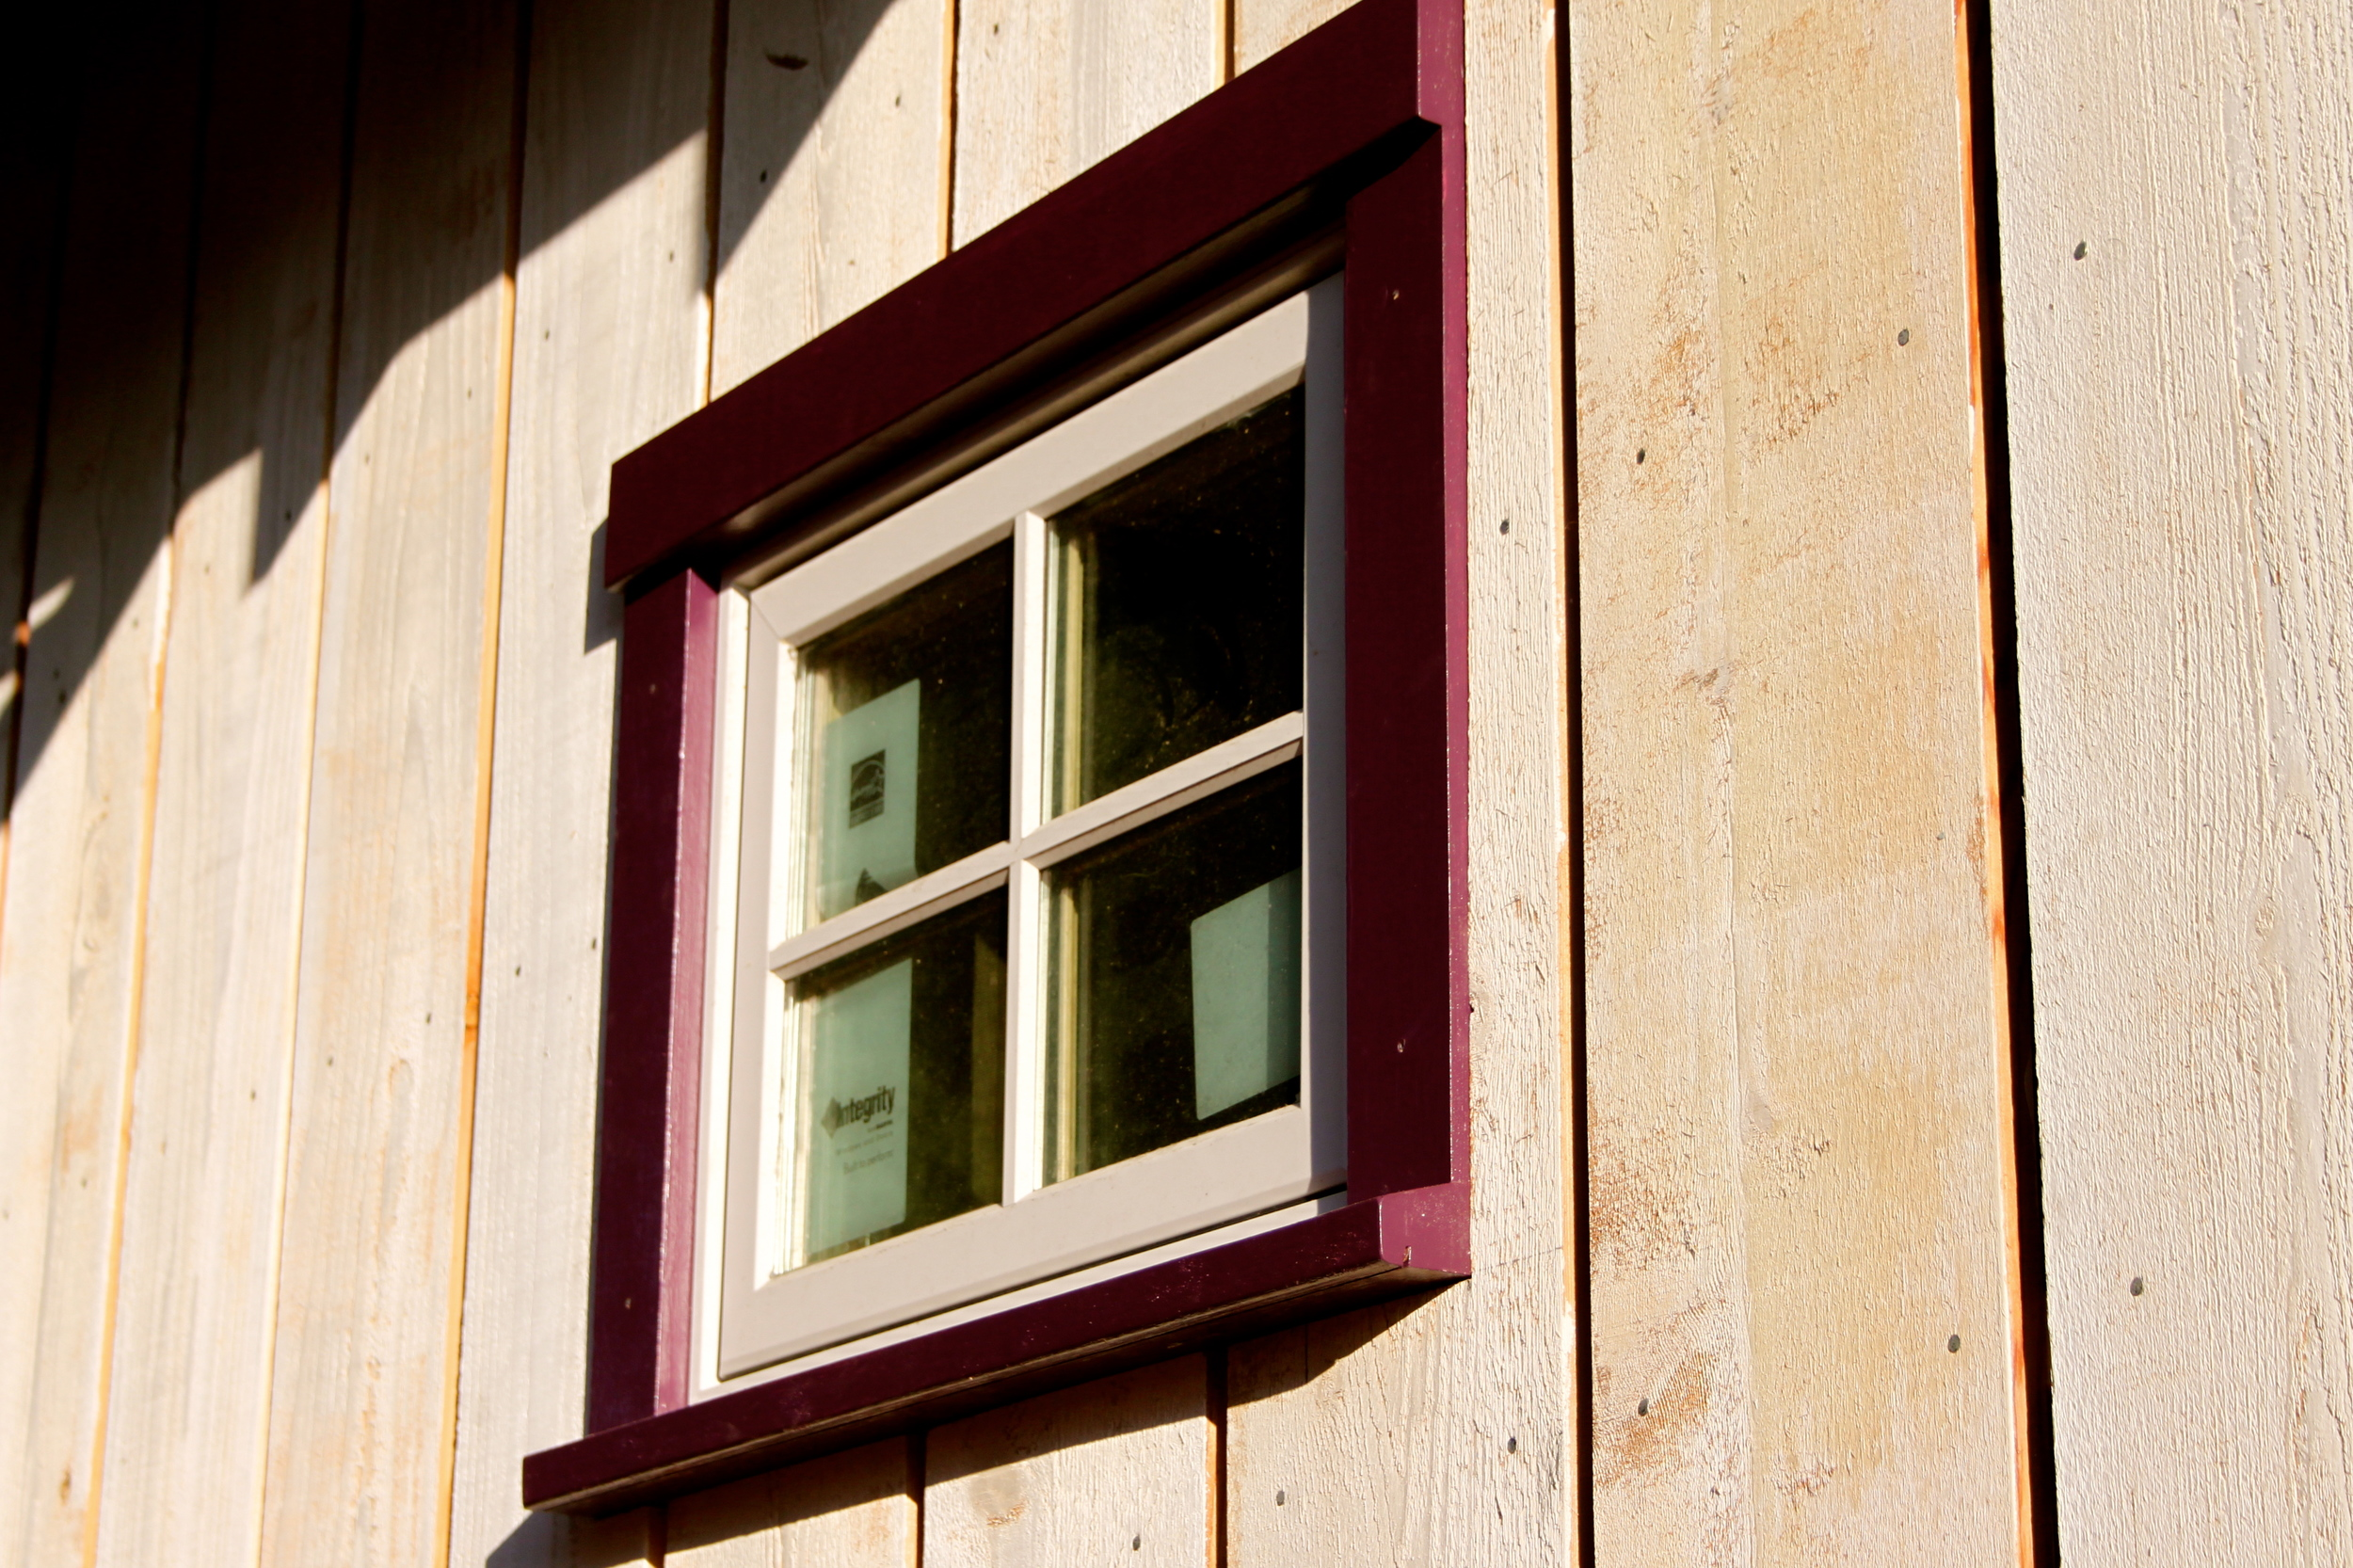 We also built the first window casing and installed it as a single unit using pocket-hole joinery to preserve the integrity of the surround. It's also painted!